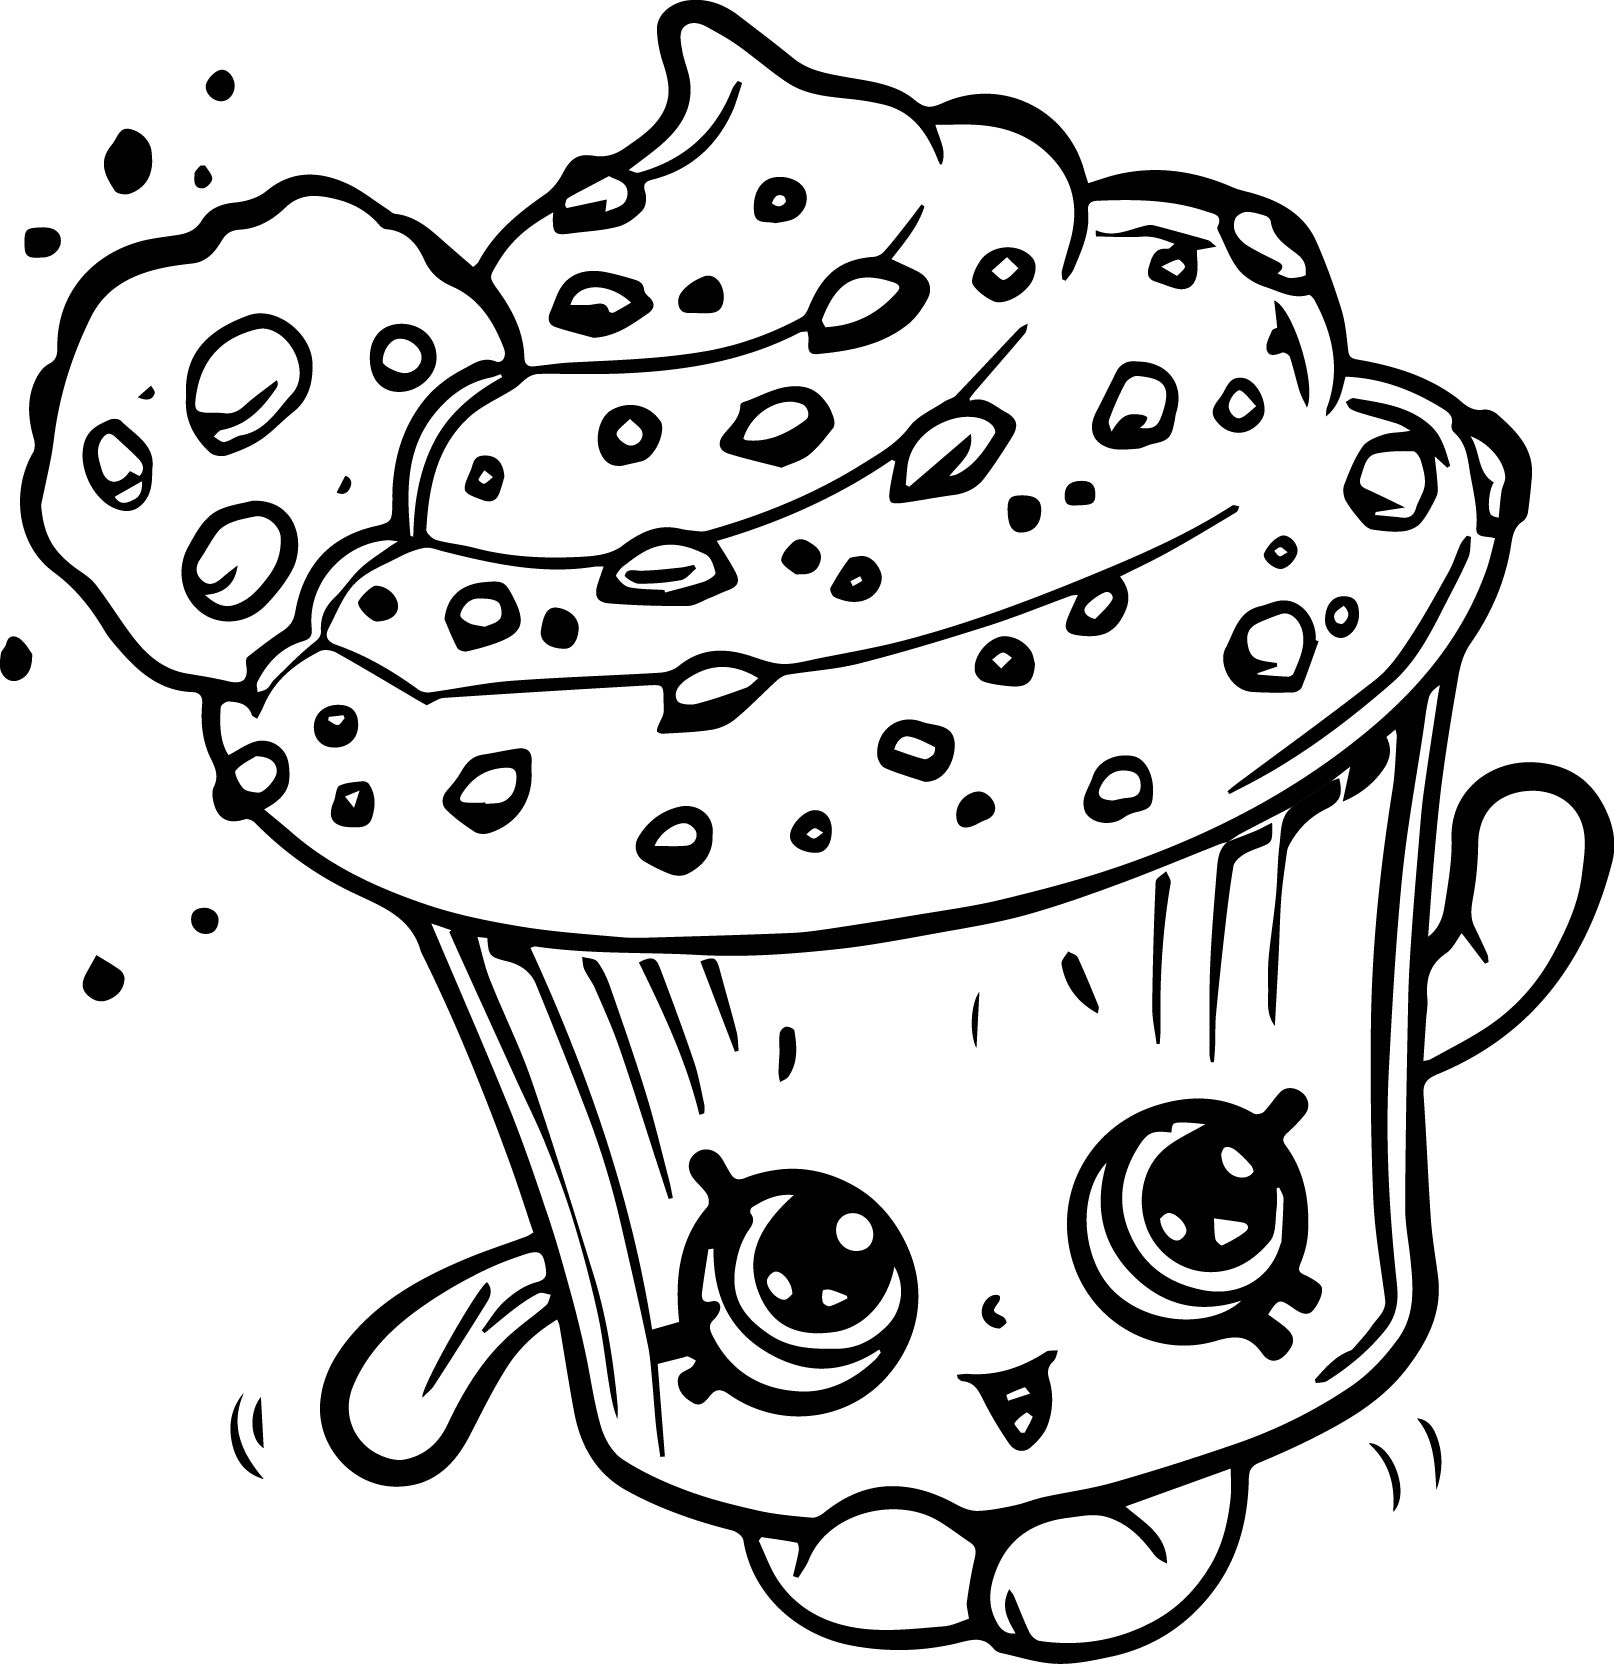 - Shopkins Coloring Pages To Print Creamy Cookie Cupcake Shopkins